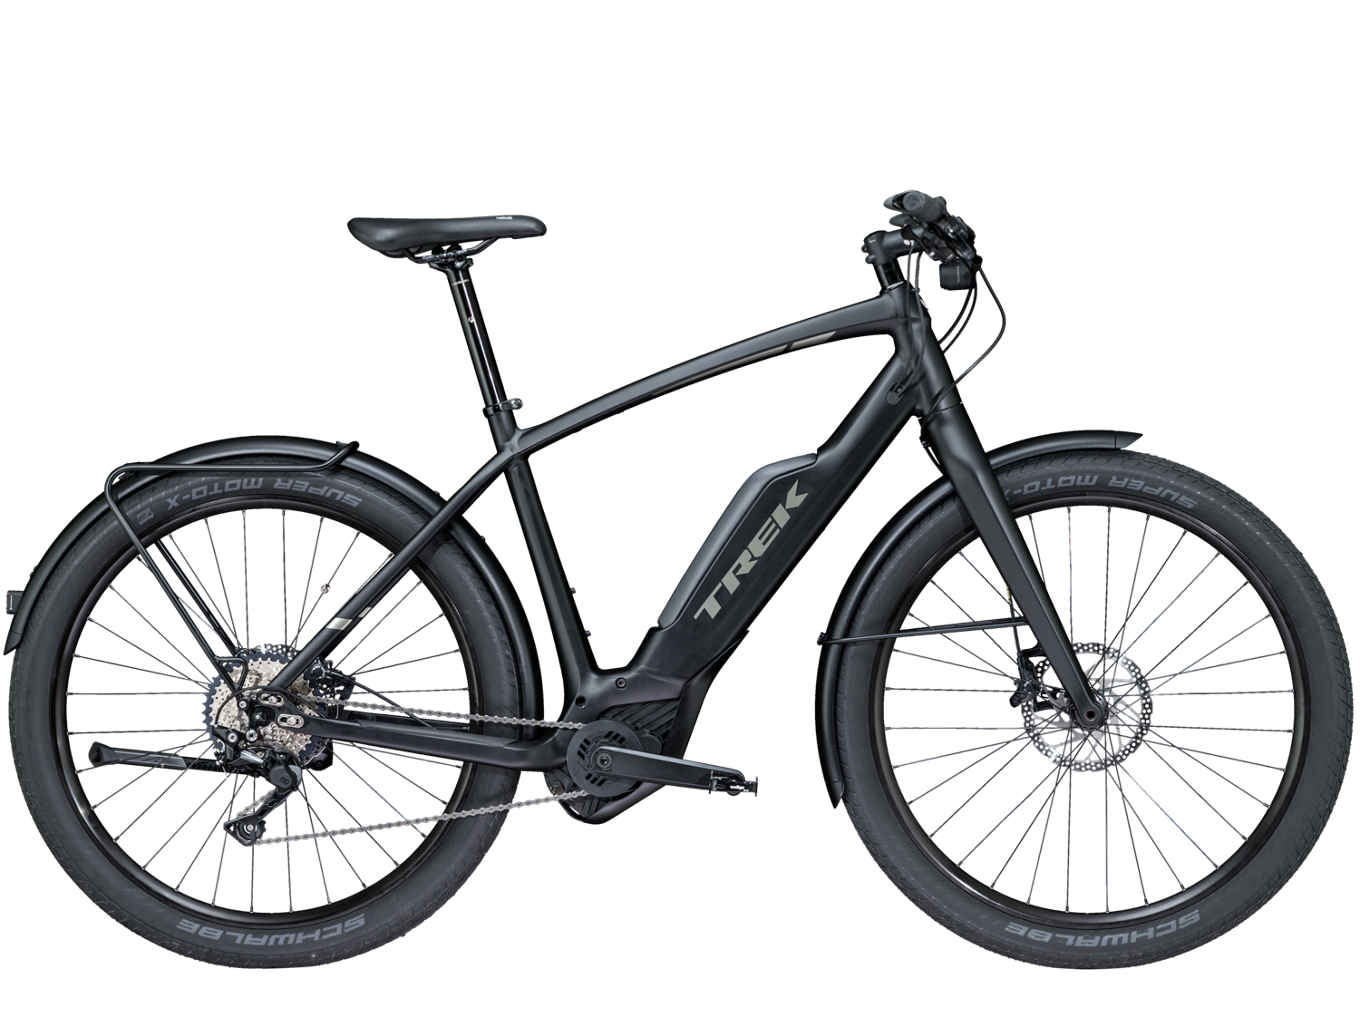 Ready To Buy 2018 Norco Vlt R 1 Electric Bike Forum Q